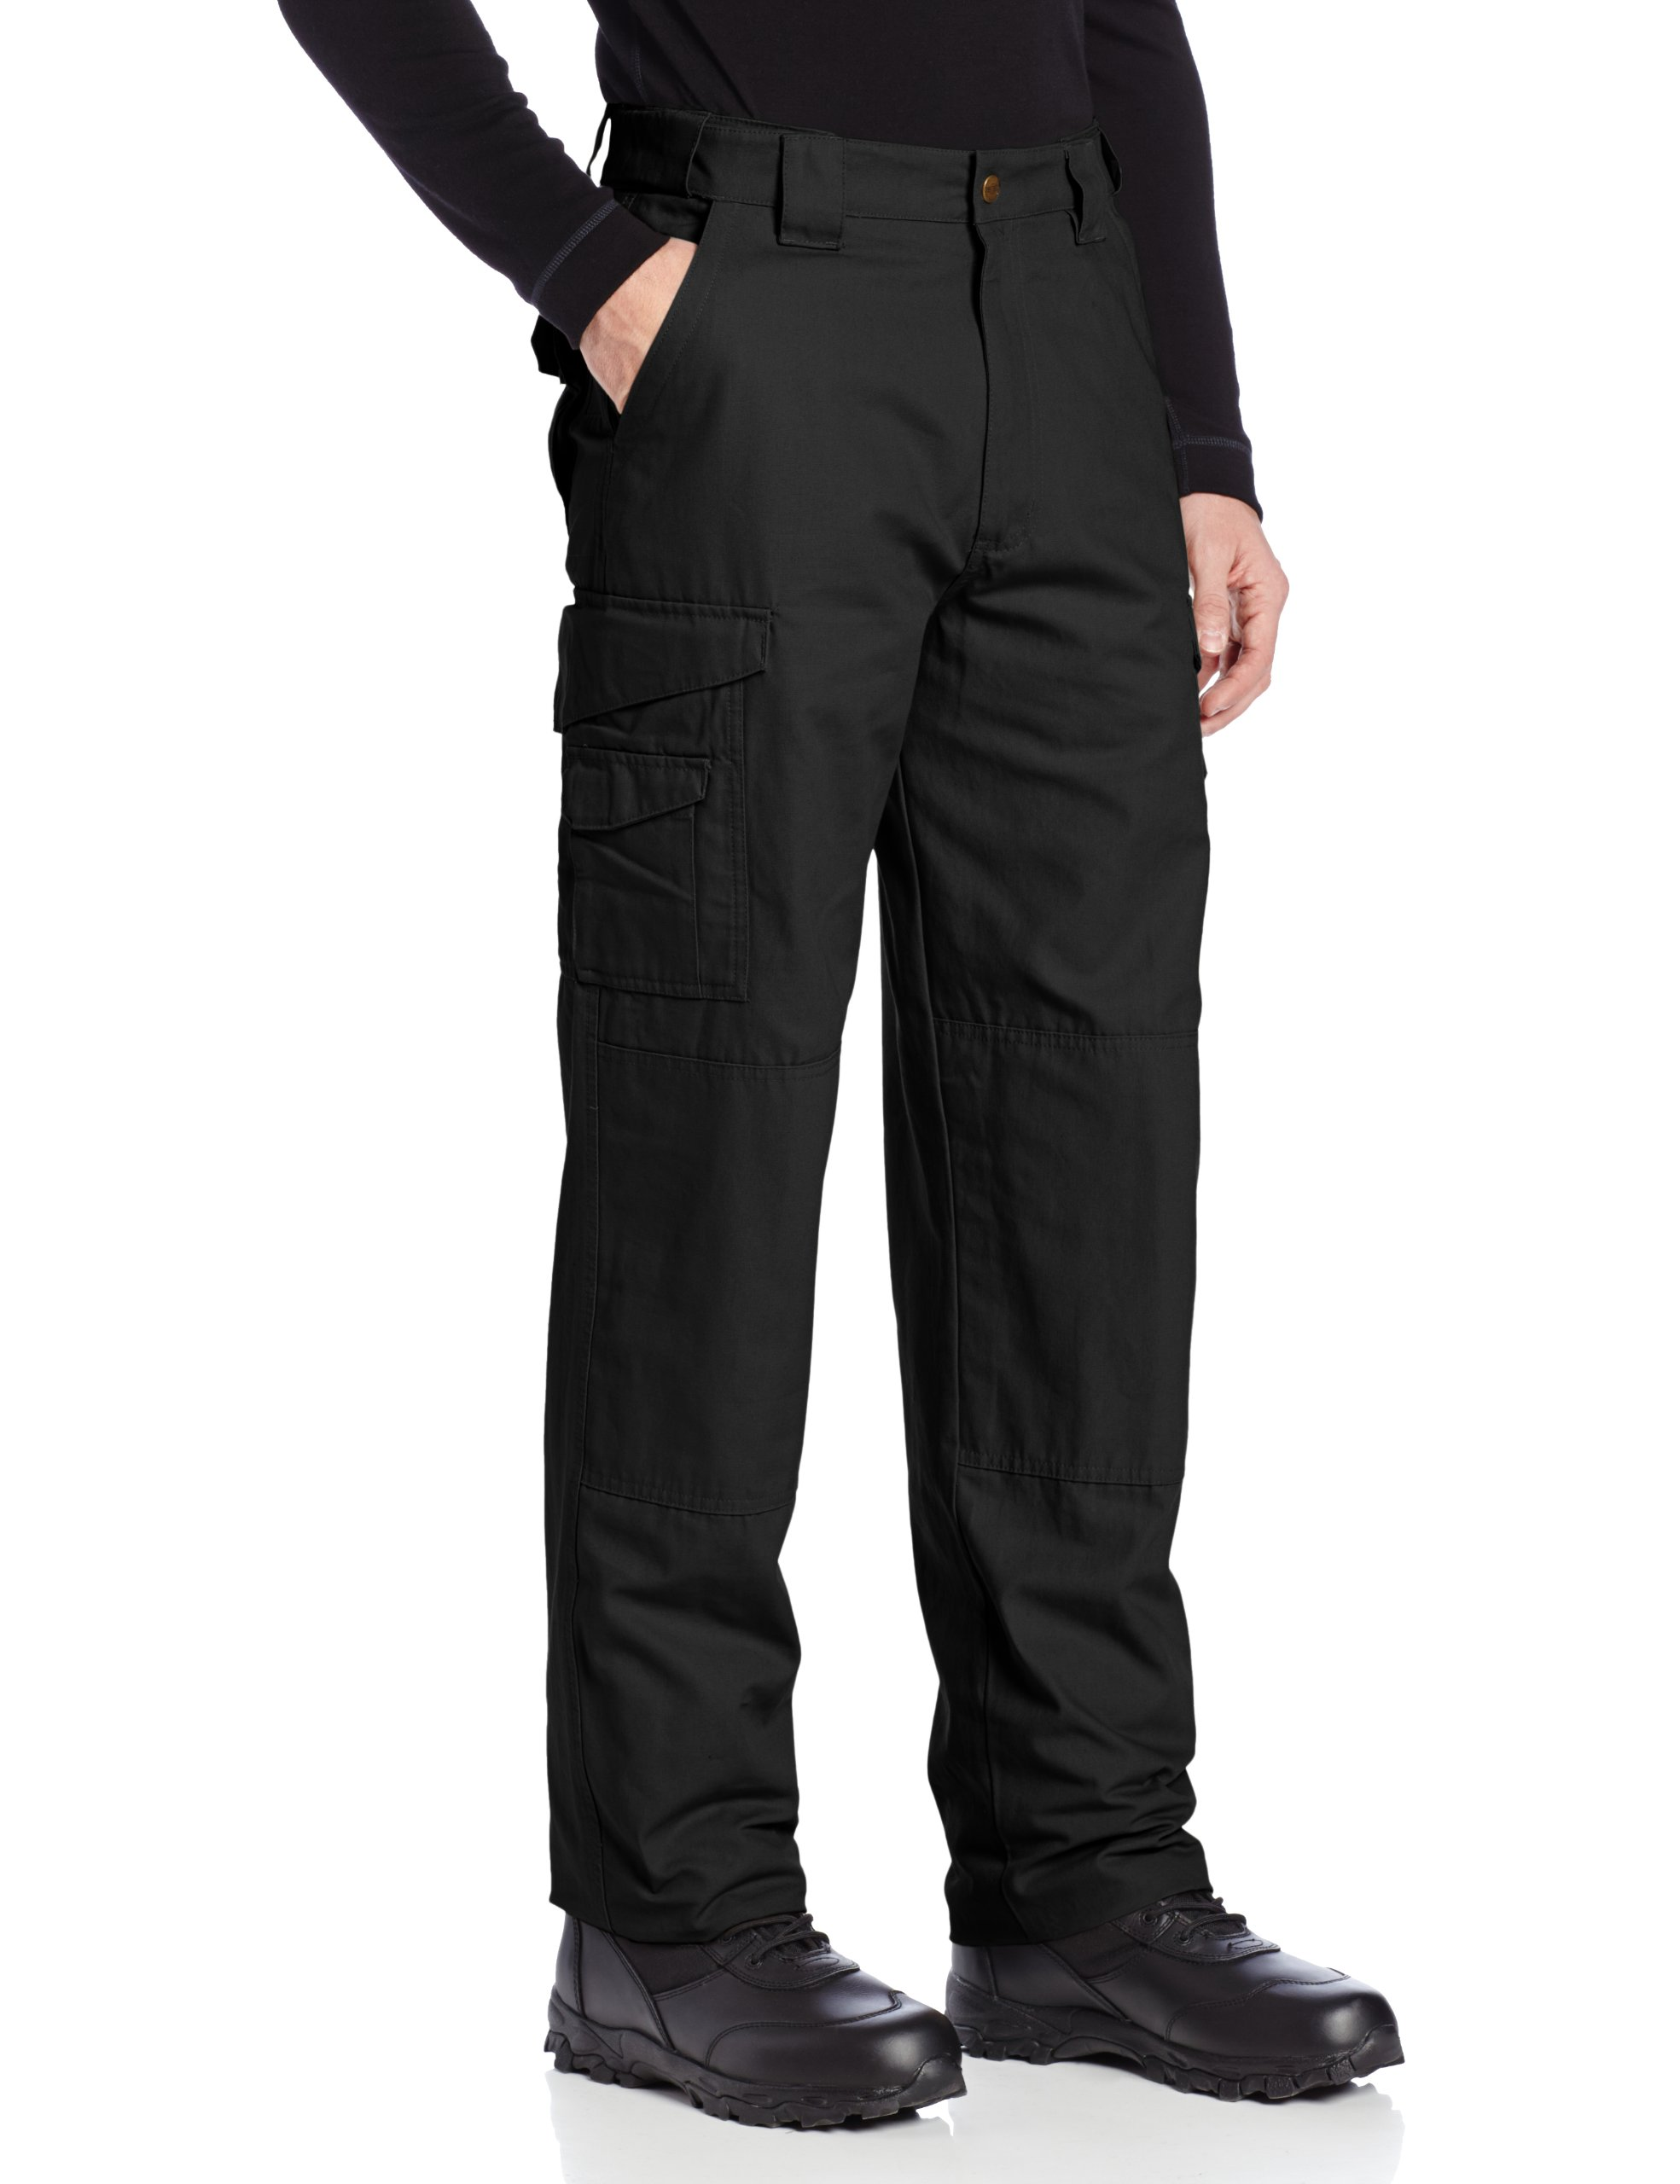 TRU-SPEC Men's Cotton 24-7 Pant, Black, 48-Inch Unhemmed